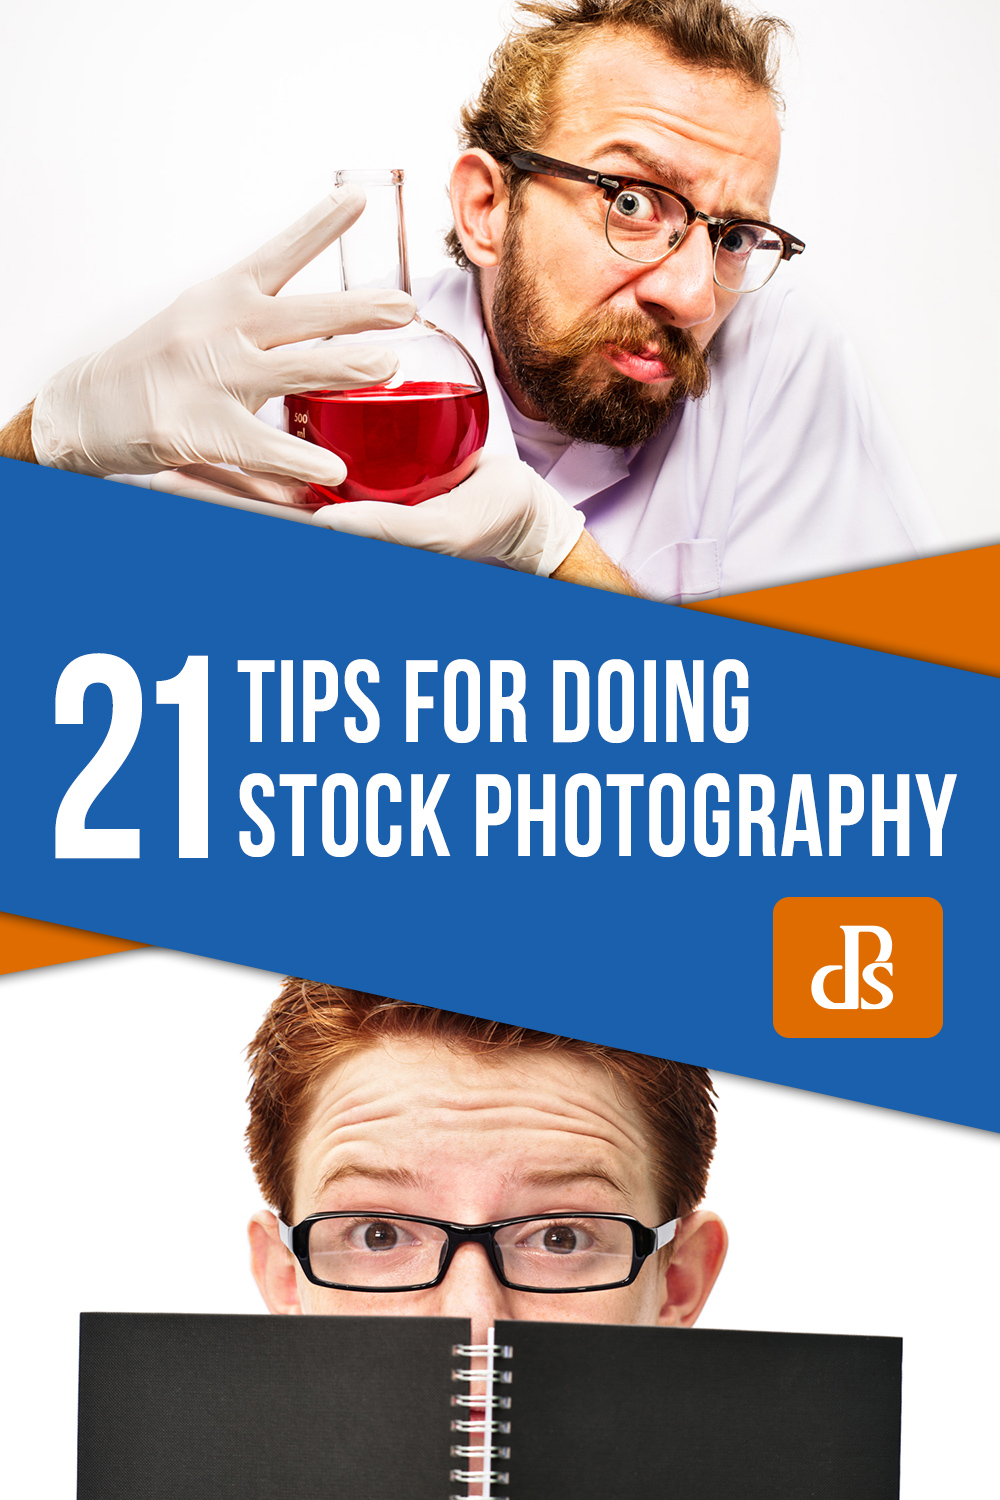 21-tips-for-do-stock photography